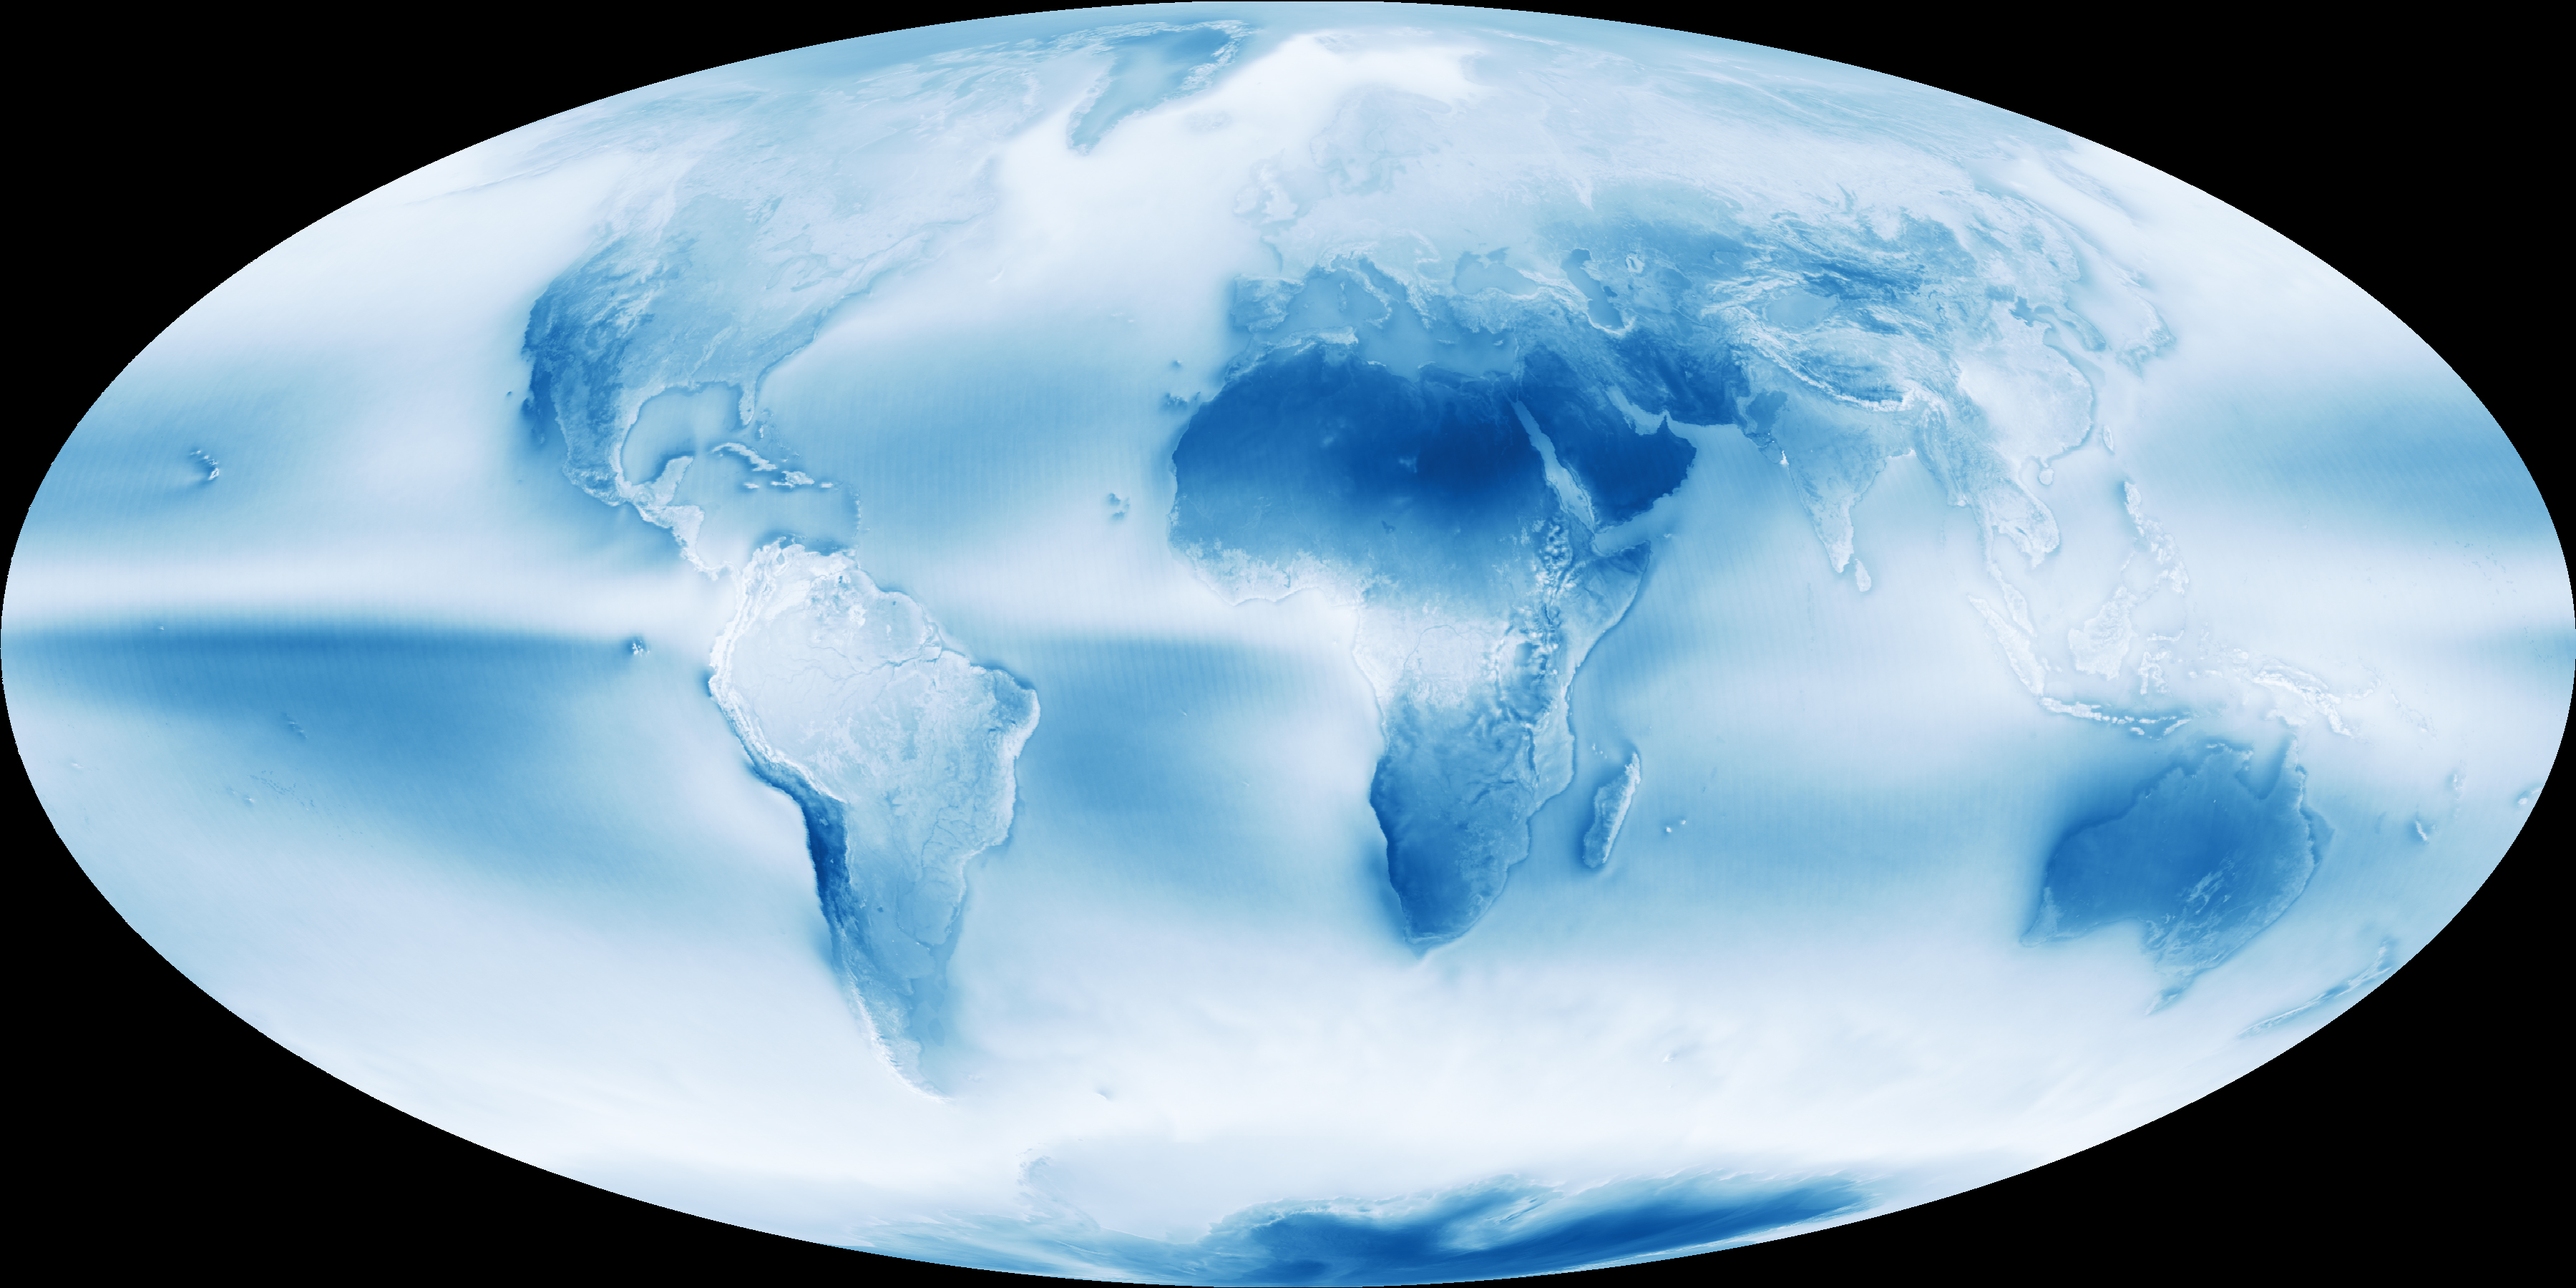 nasa earth data - photo #9